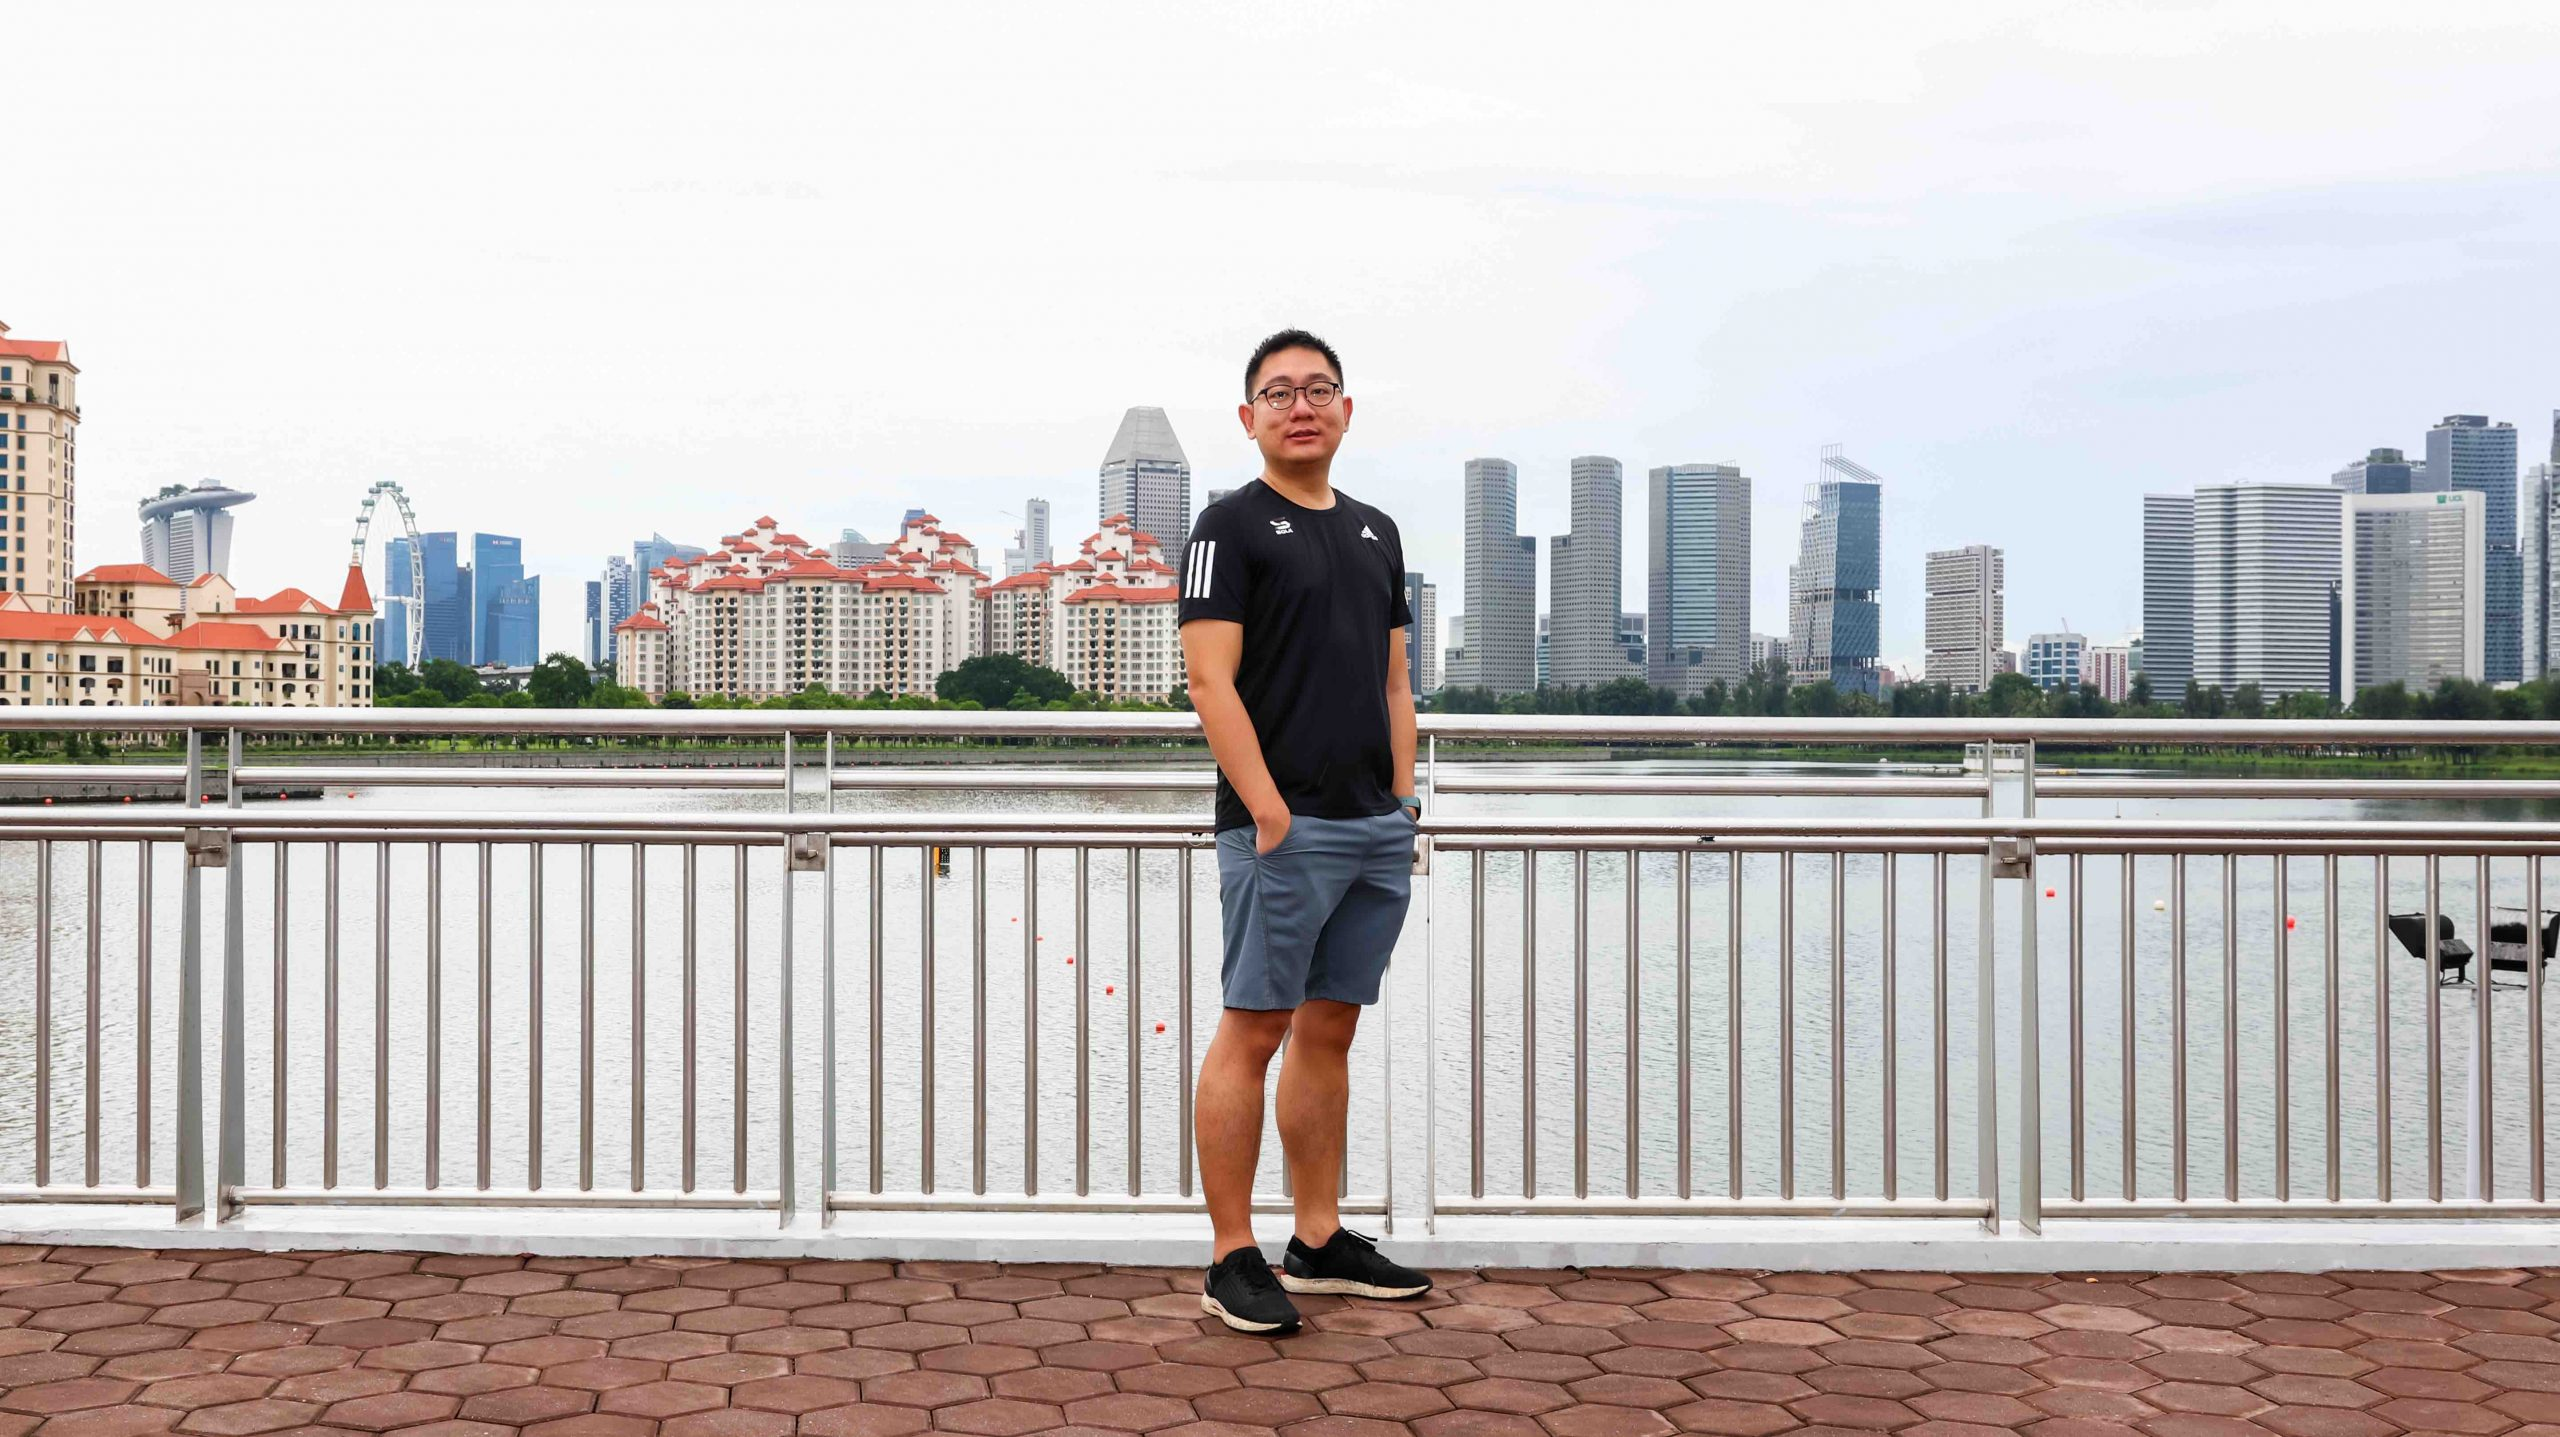 Alvinology's Weight Loss Journey with Absolute Wellness Singapore - Part 2 - Alvinology